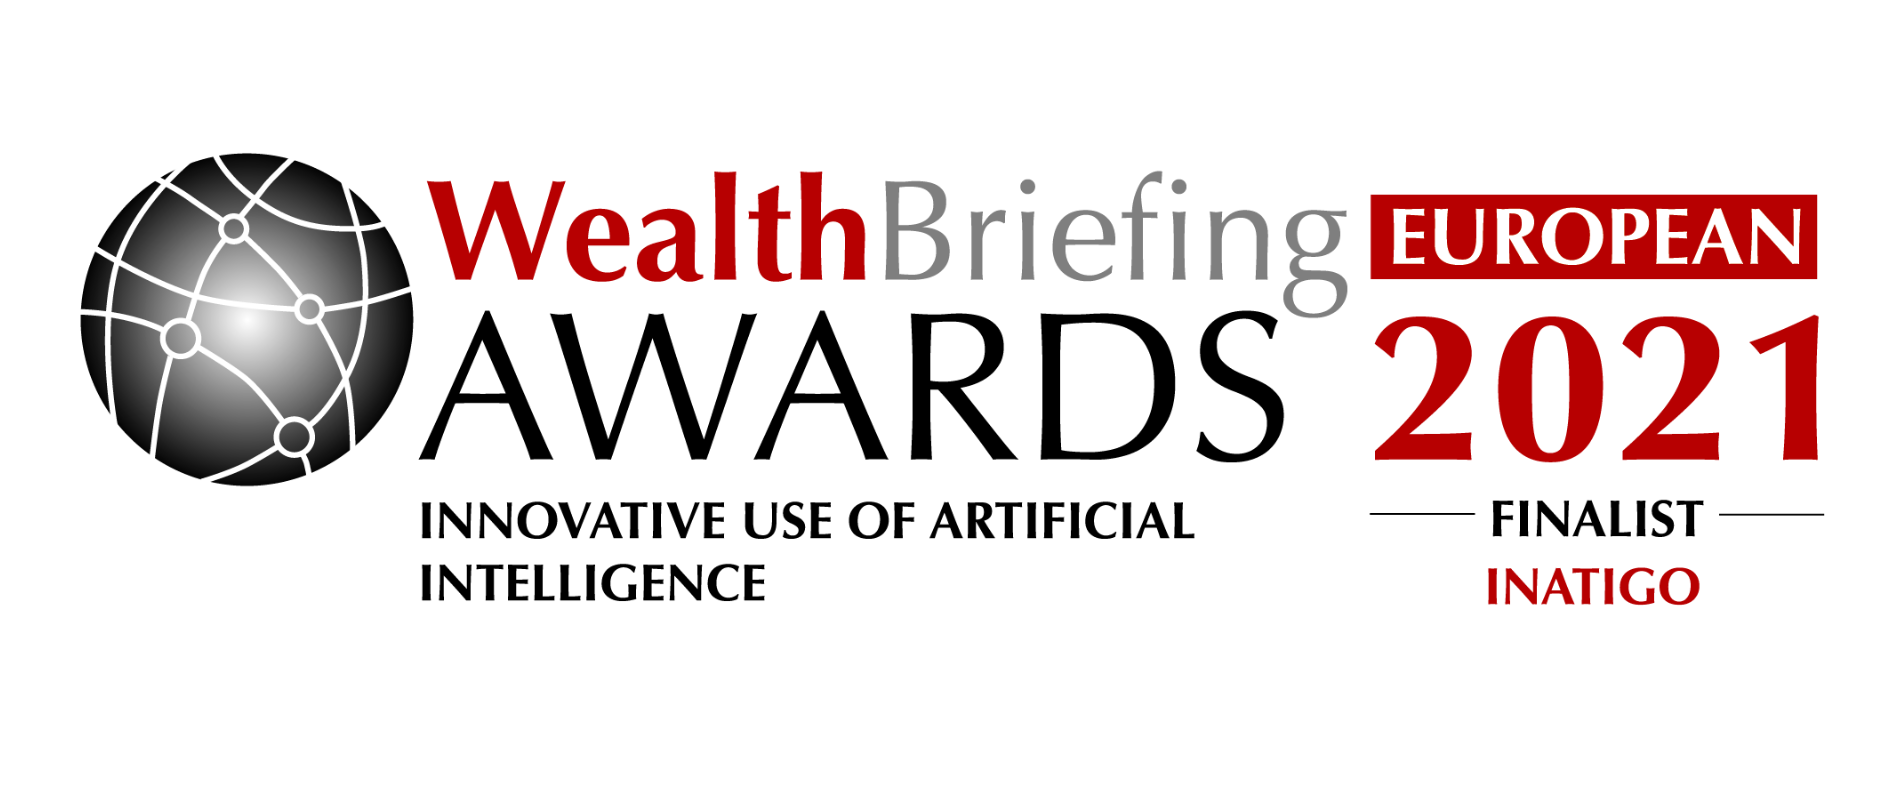 INATIGO Named A Finalist In 'innovative Use Of Artificial Intelligence' At The Wealthbriefing European Awards 2021